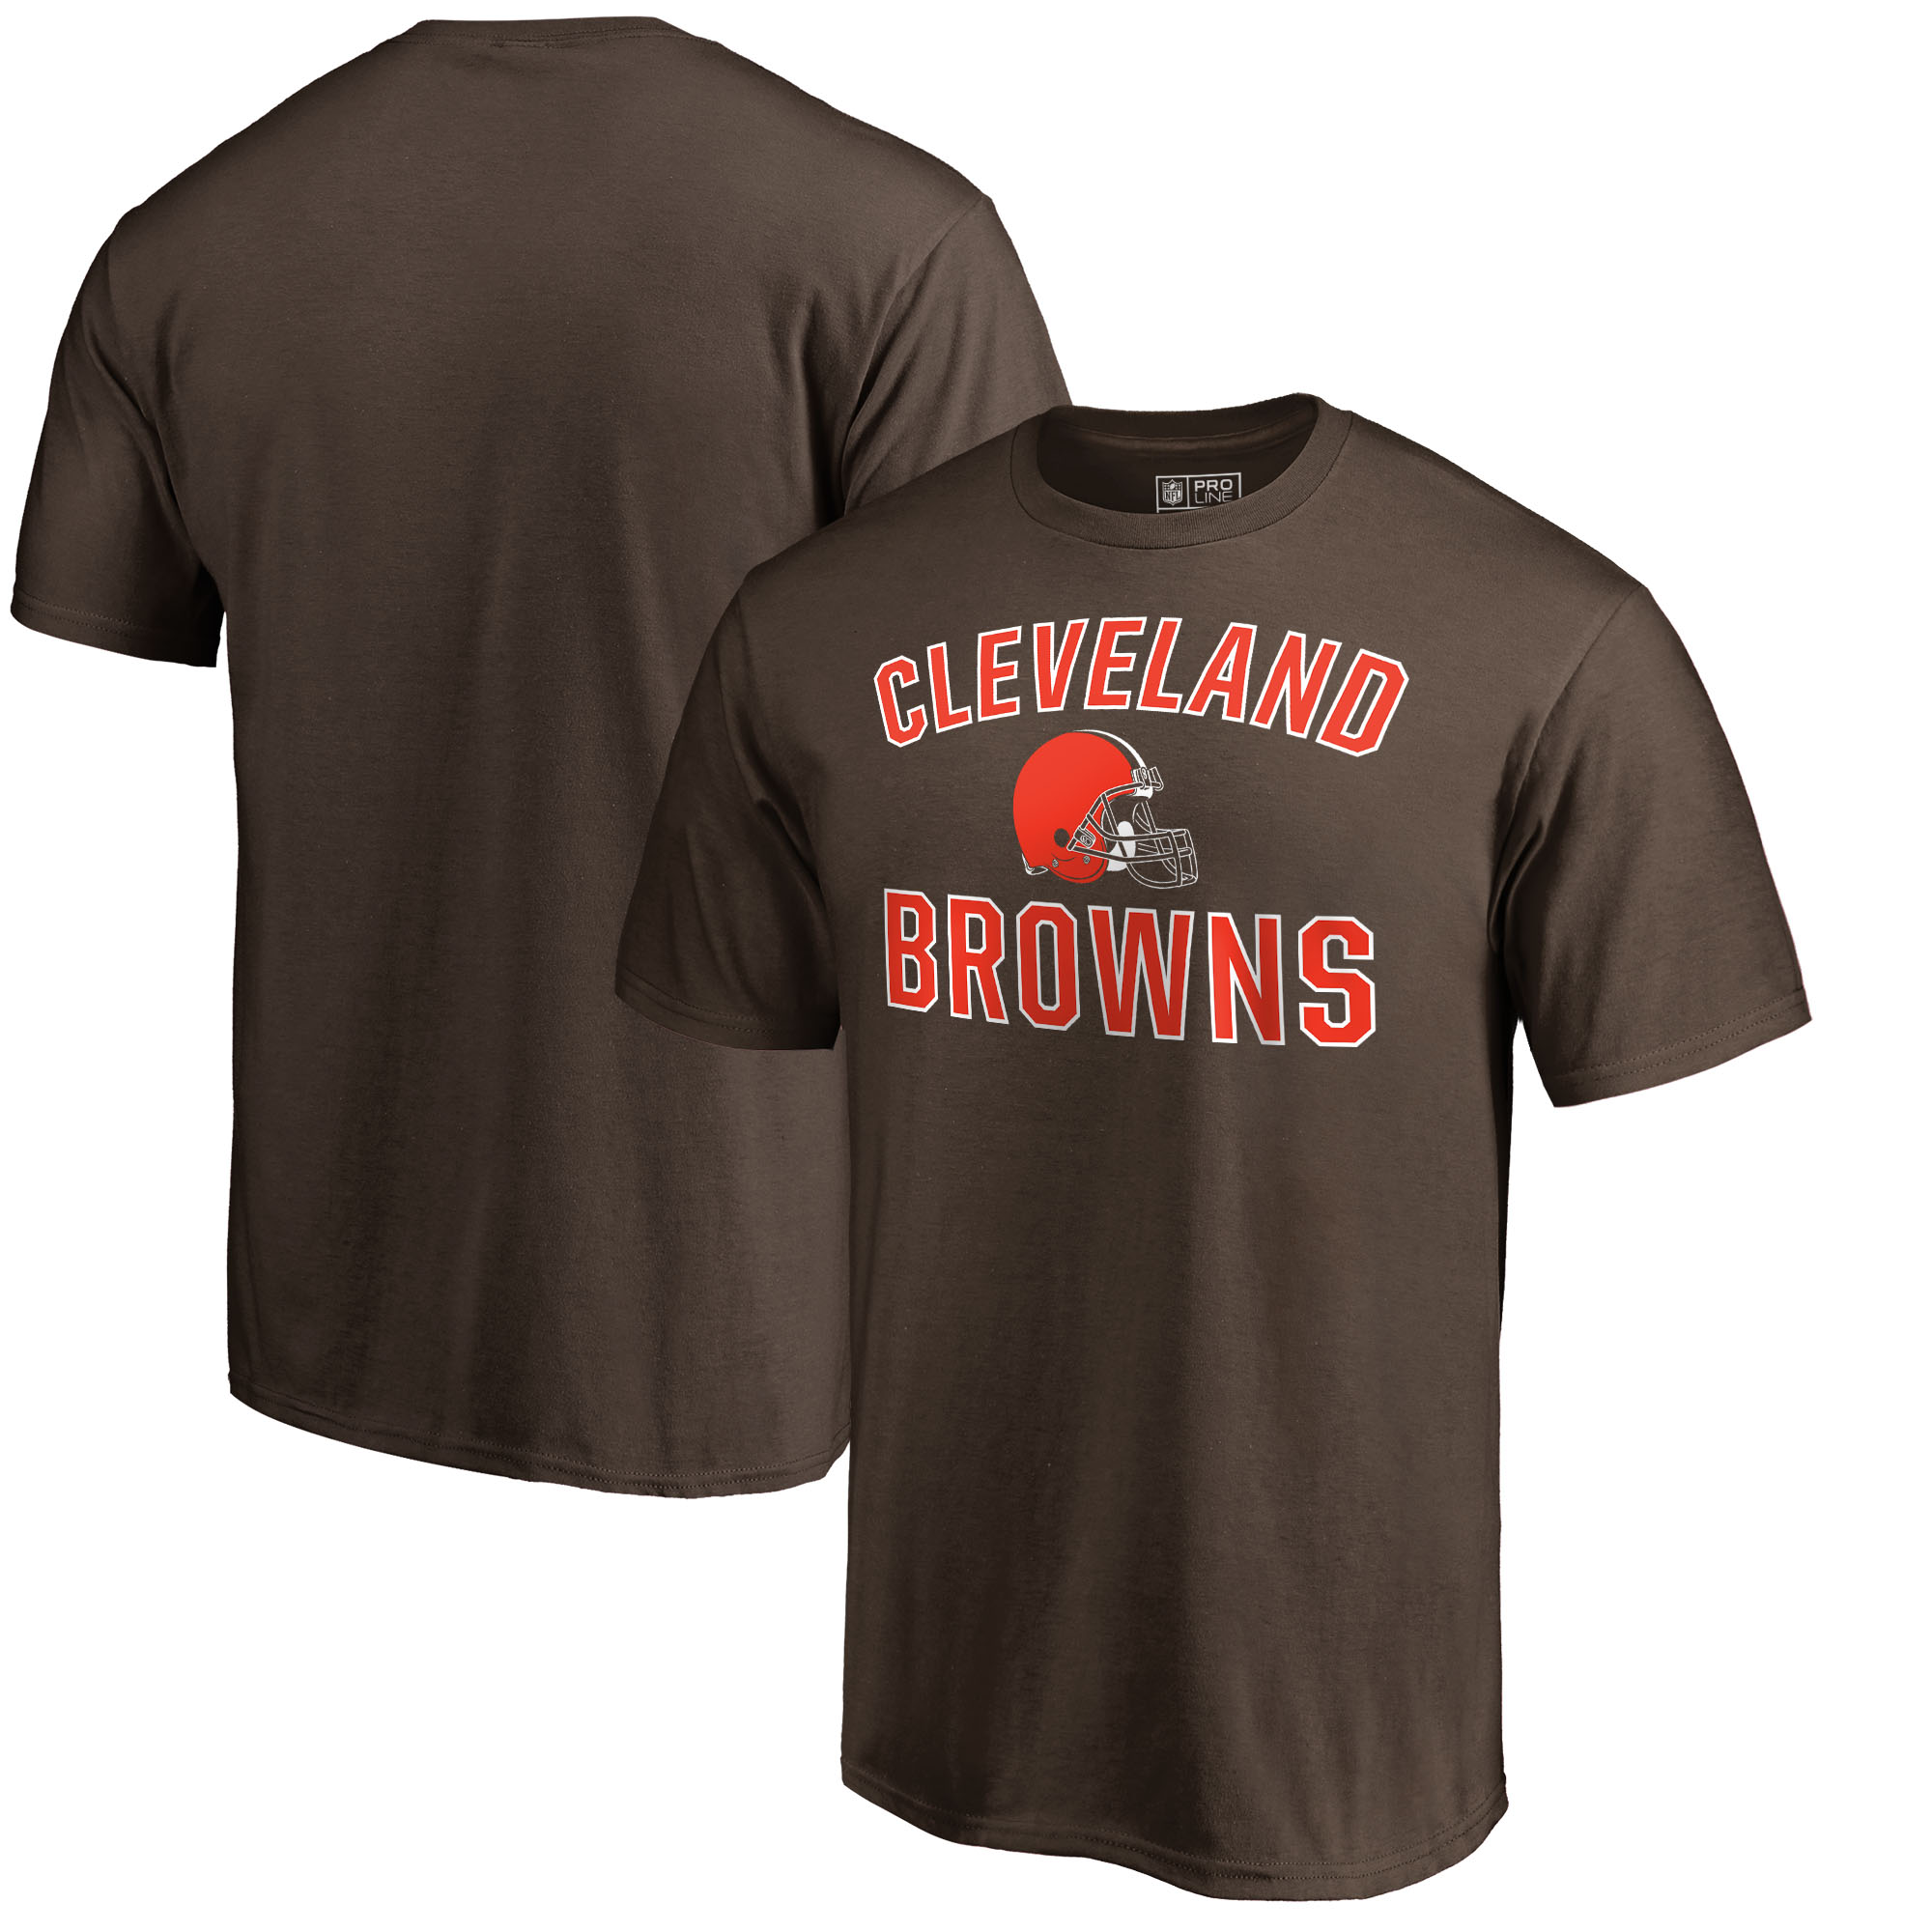 Cleveland Browns NFL Pro Line by Fanatics Branded Victory Arch T-Shirt - Brown